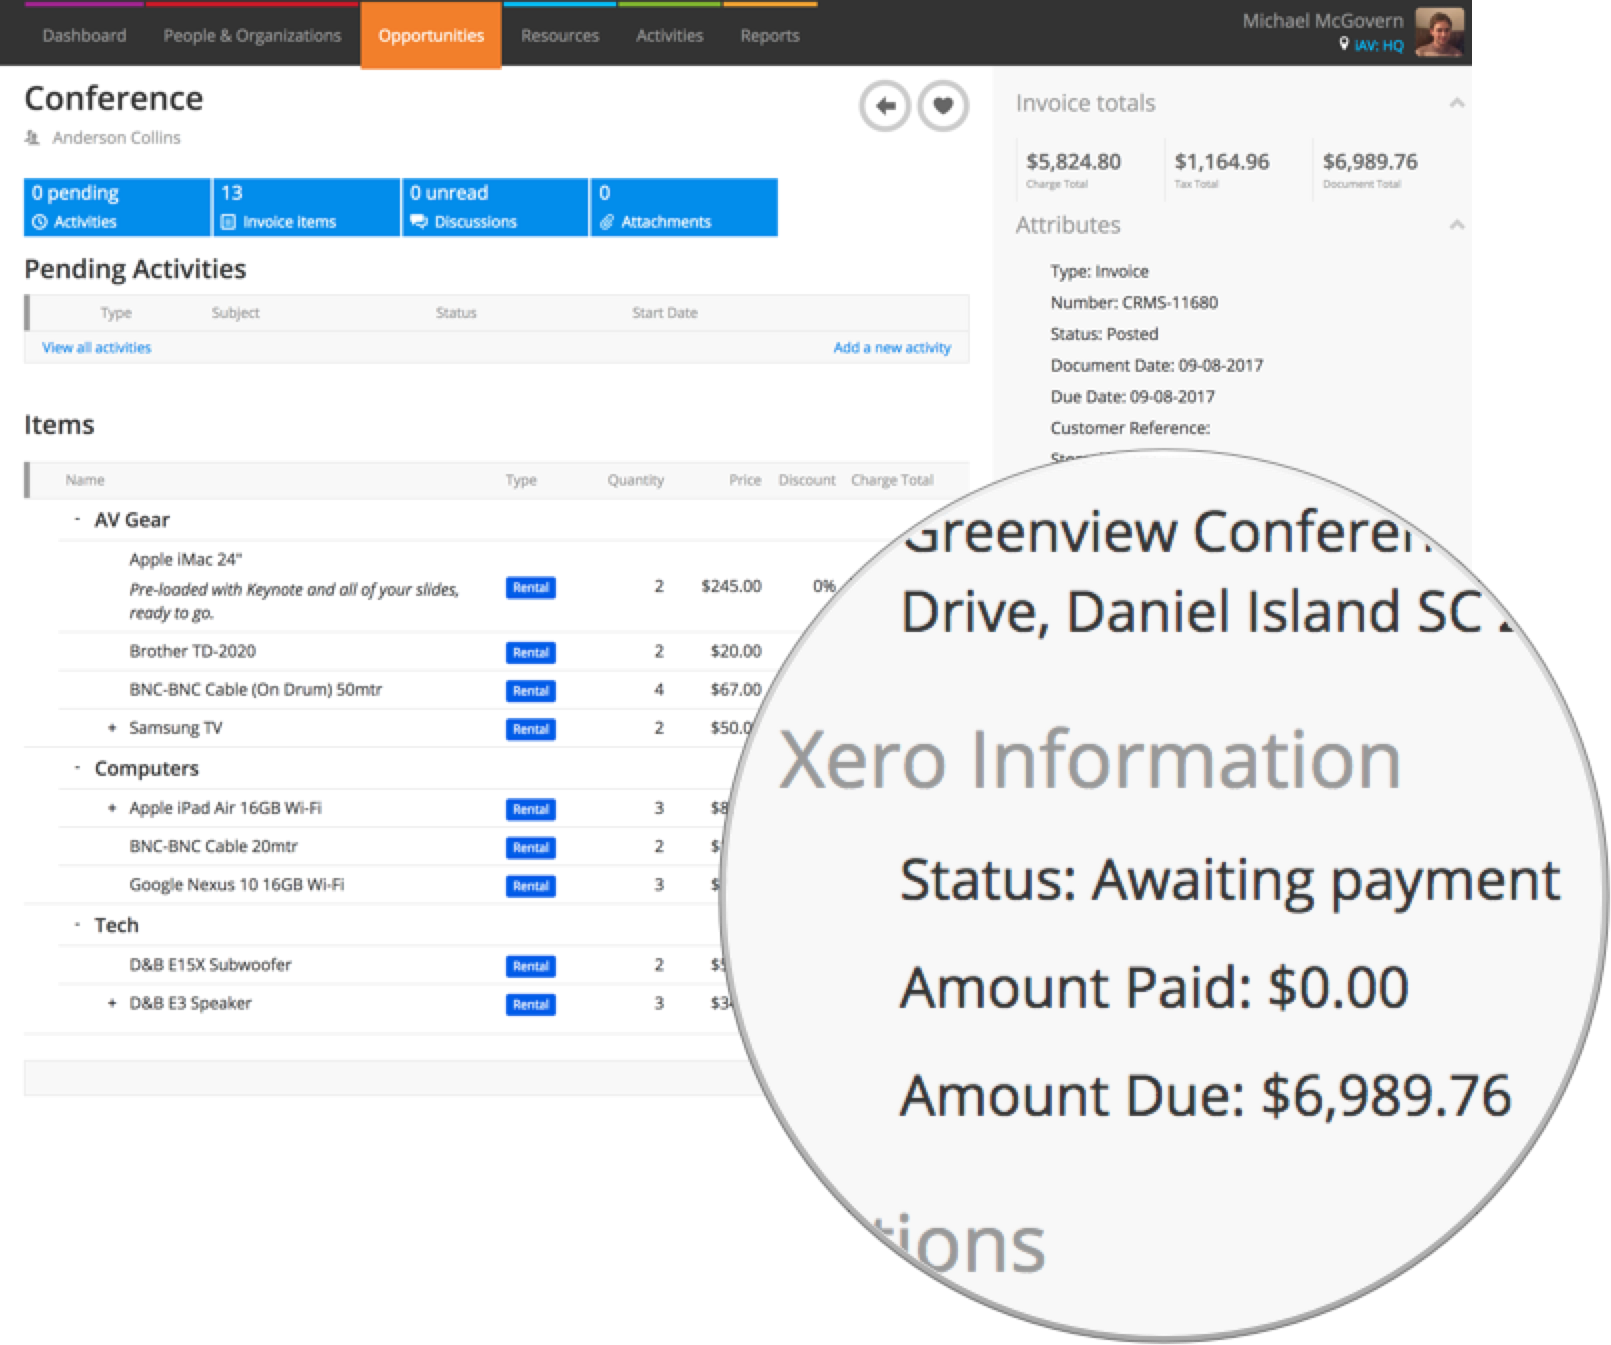 Post An Invoice Or Credit To Xero Or QuickBooks Online Current RMS - Quickbooks invoice status